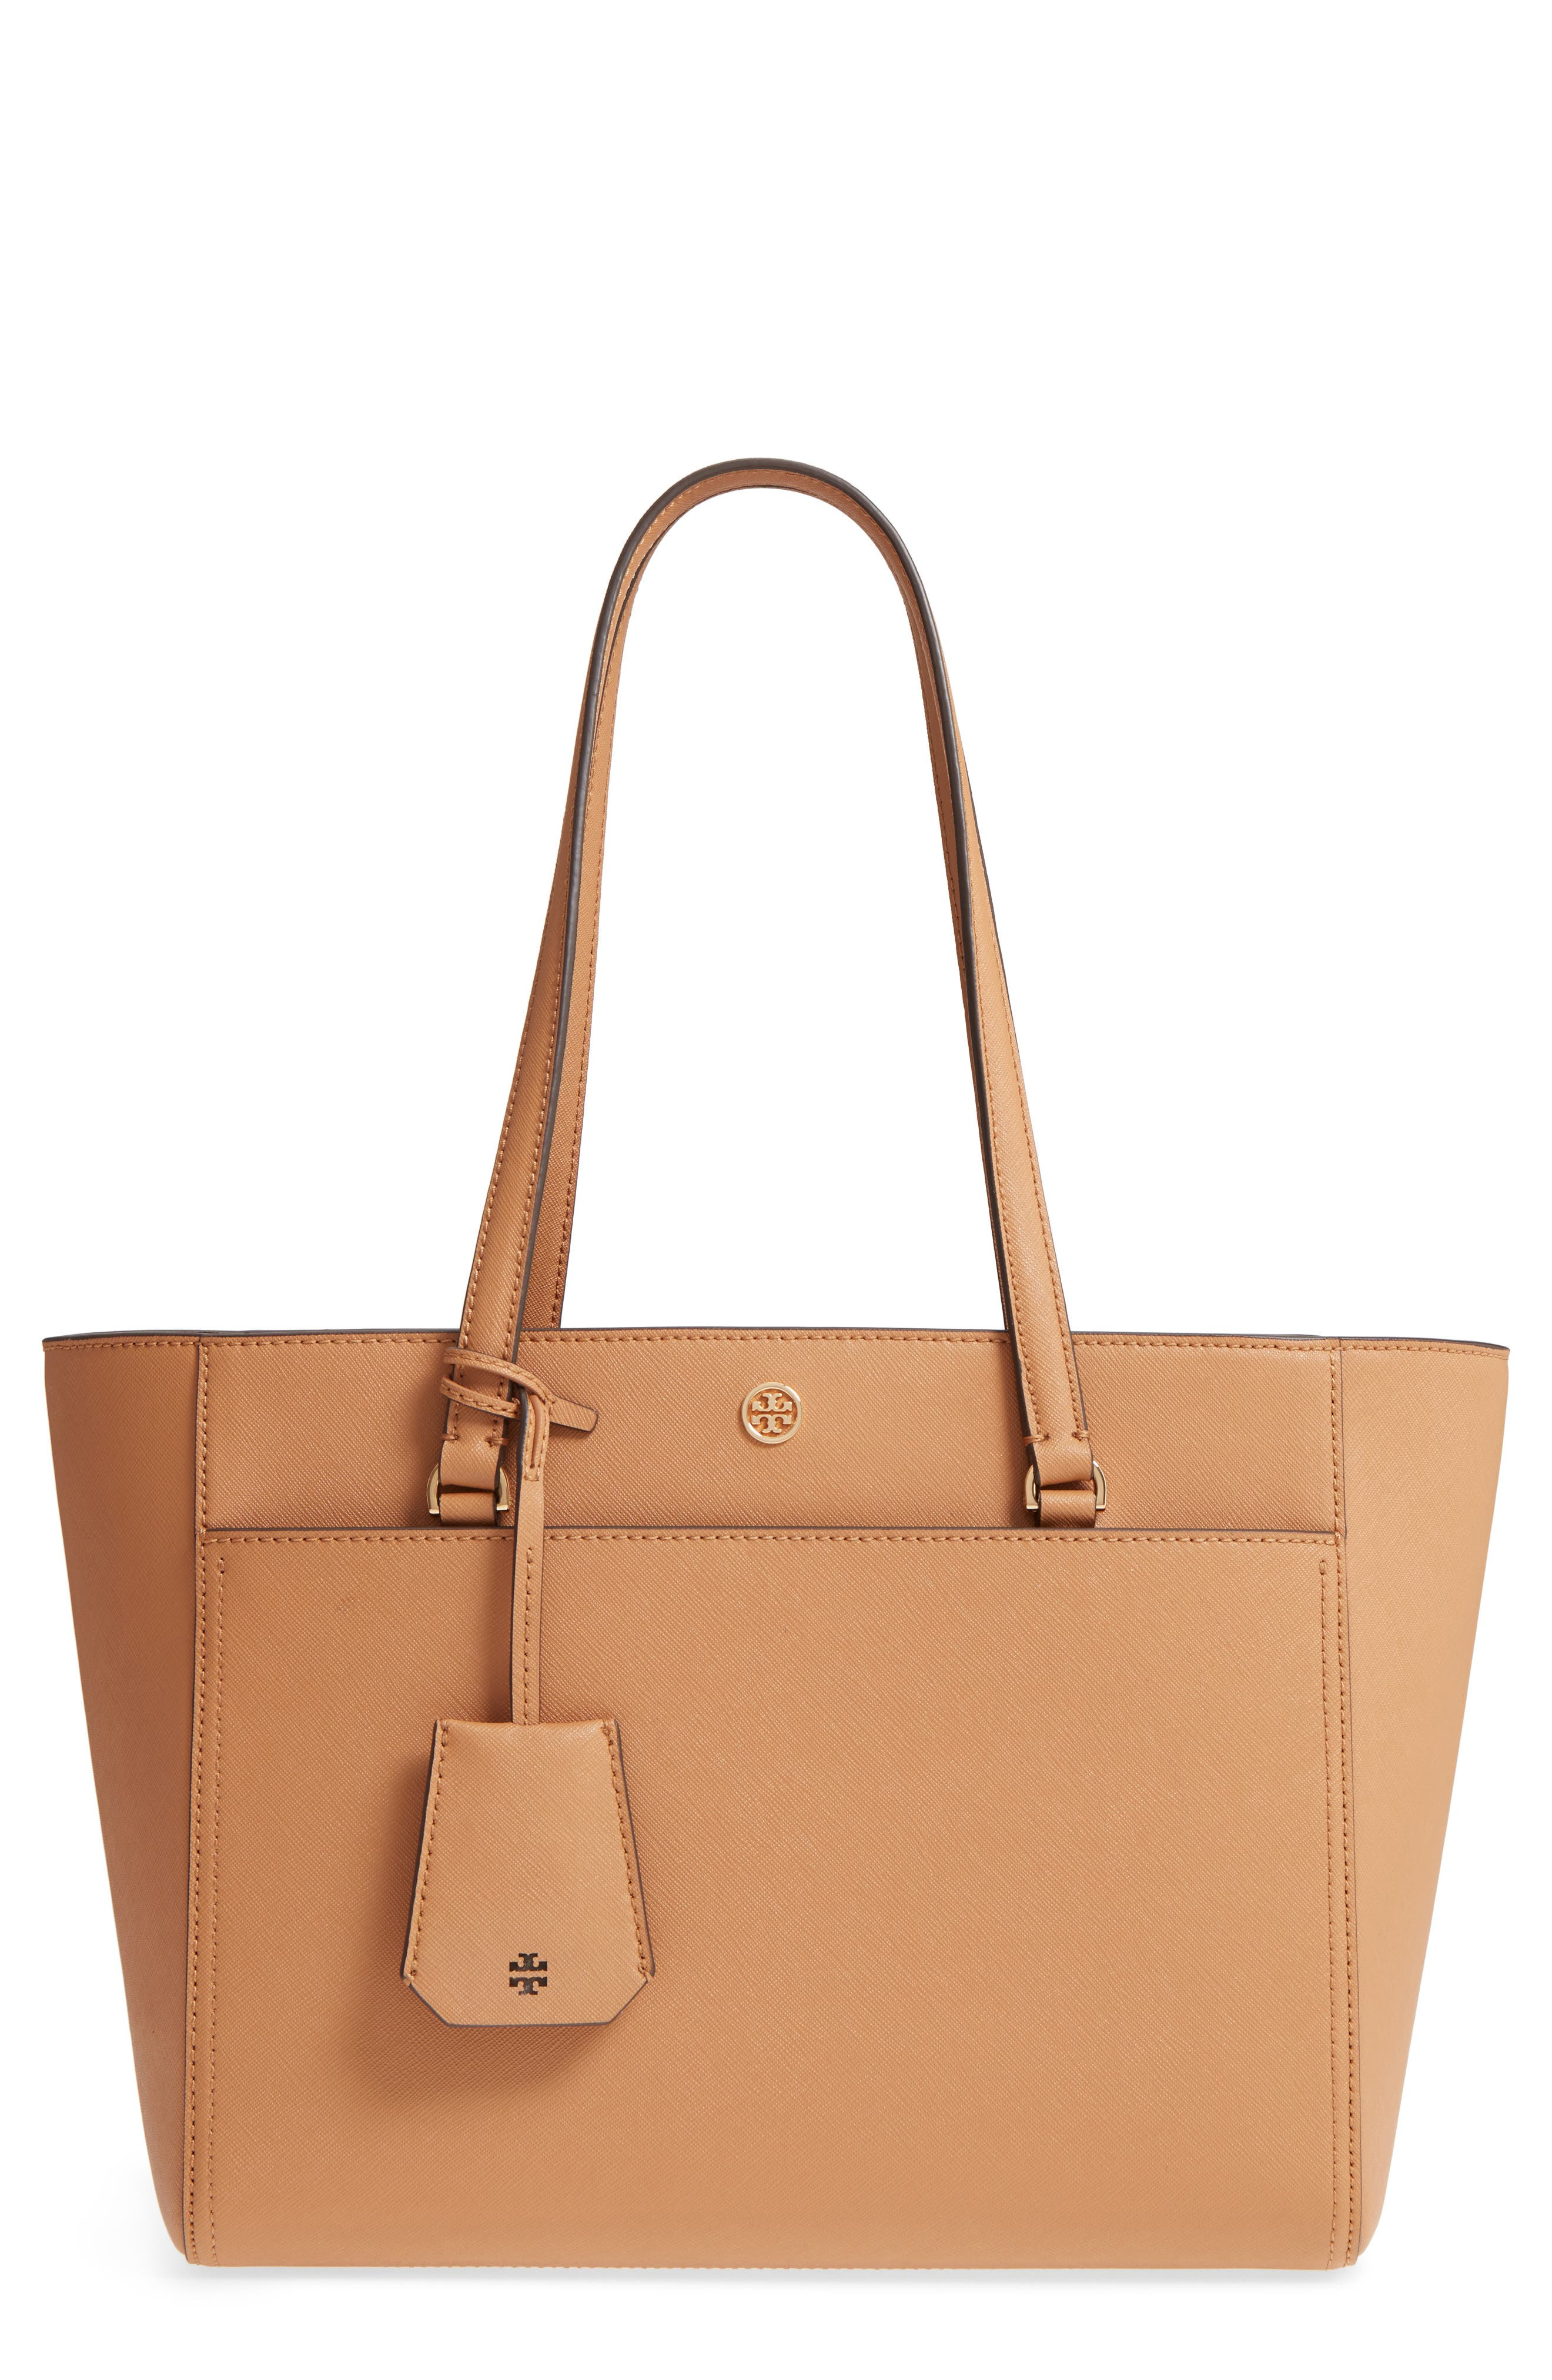 Robinson Small Saffiano Leather Zip-Top Shoulder Tote Bag in Cardamom / Royal Navy